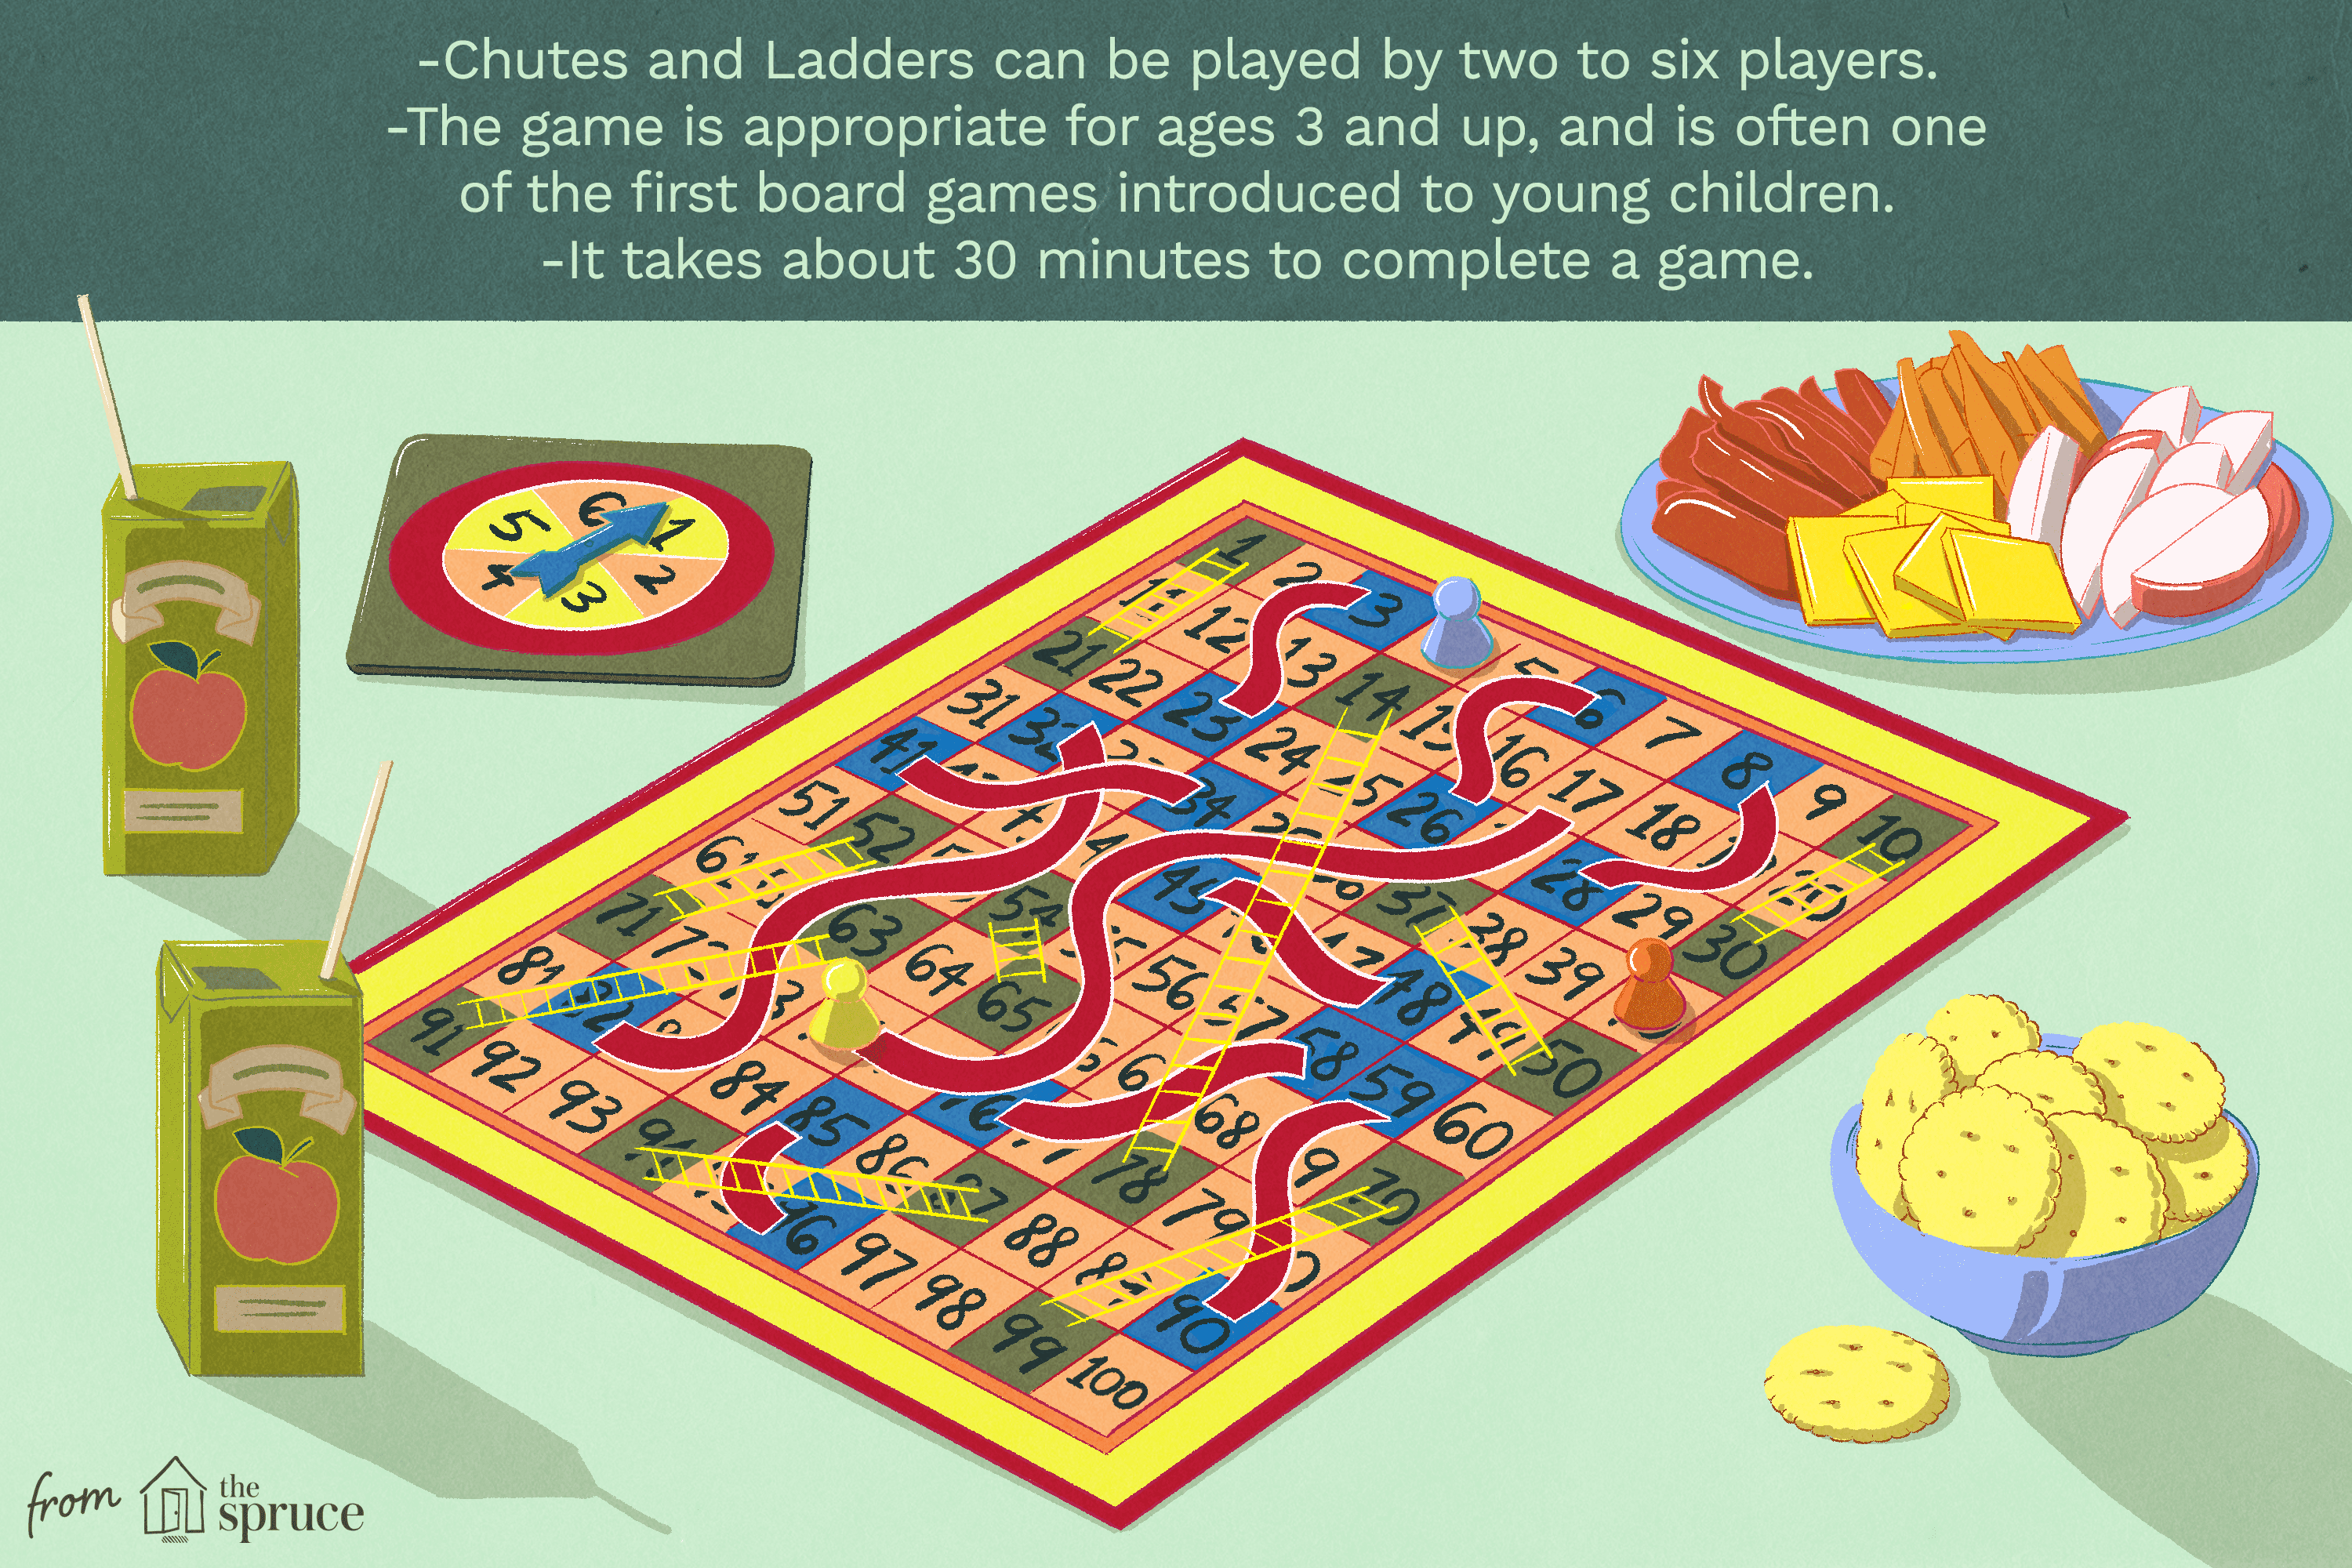 chutes and ladders illustration